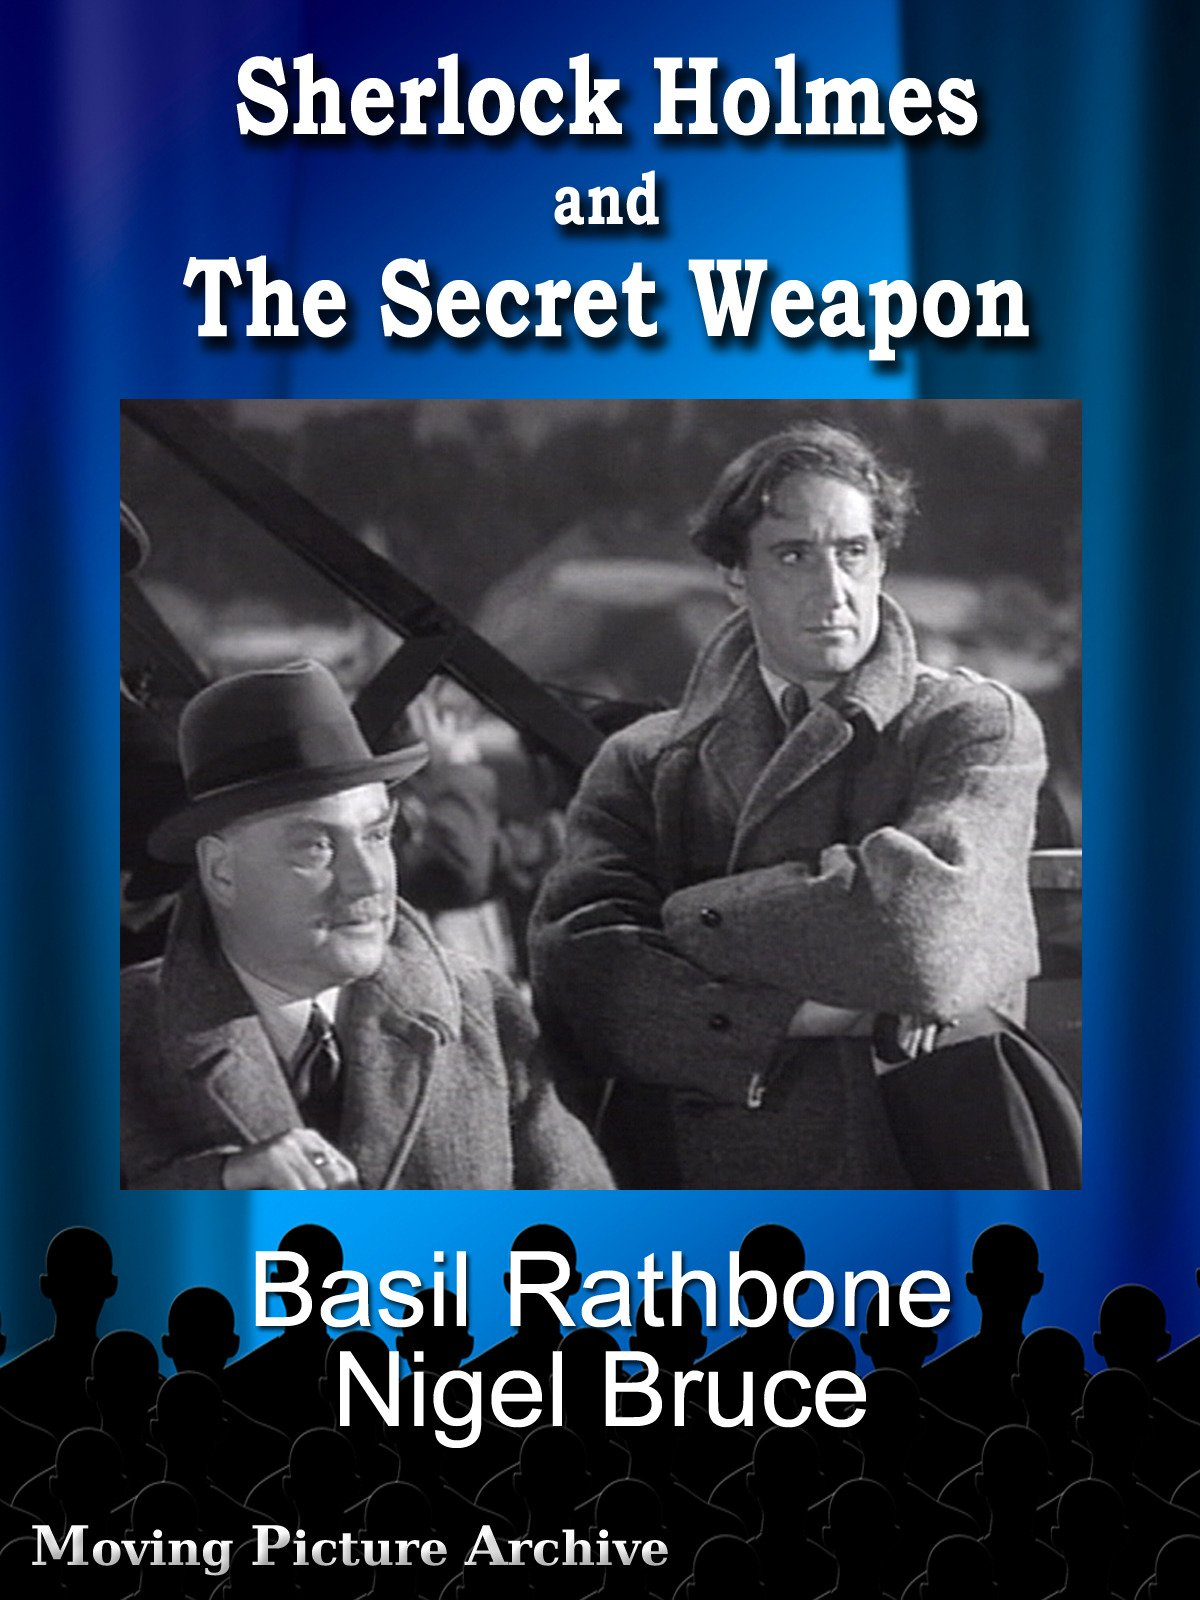 Sherlock Holmes and The Secret Weapon (1942) starring Basil Rathbone, Nigel Bruce, Lionel Atwill